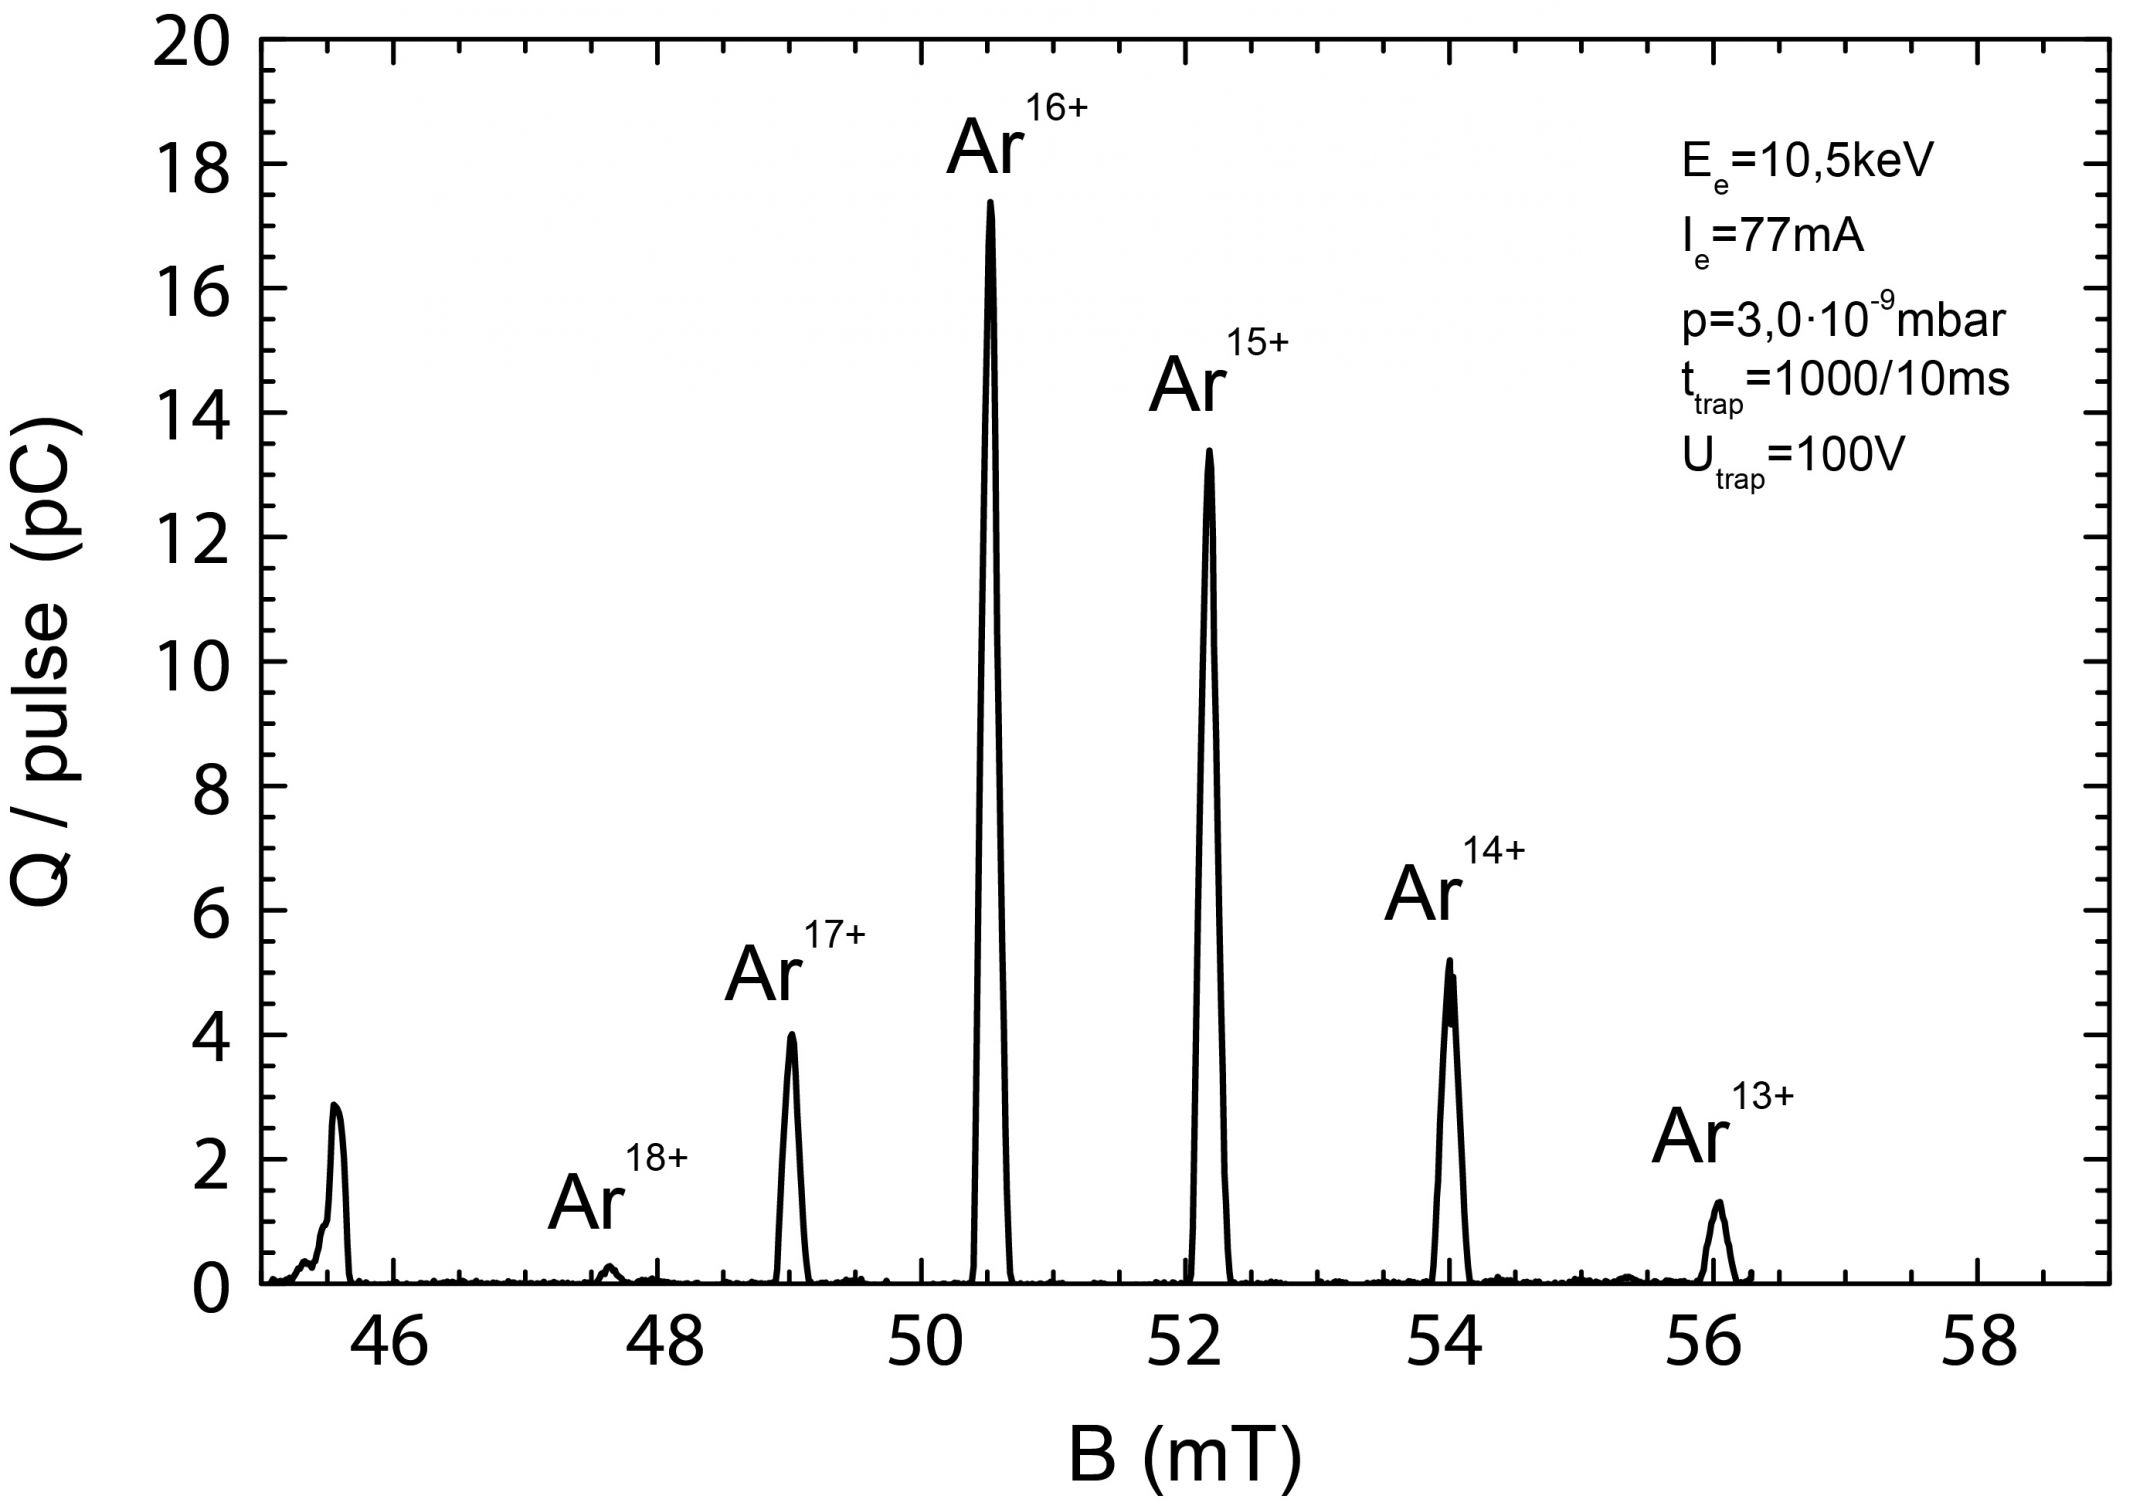 Figure 1 - Argon spectrum extracted from the Dresden EBIS-A